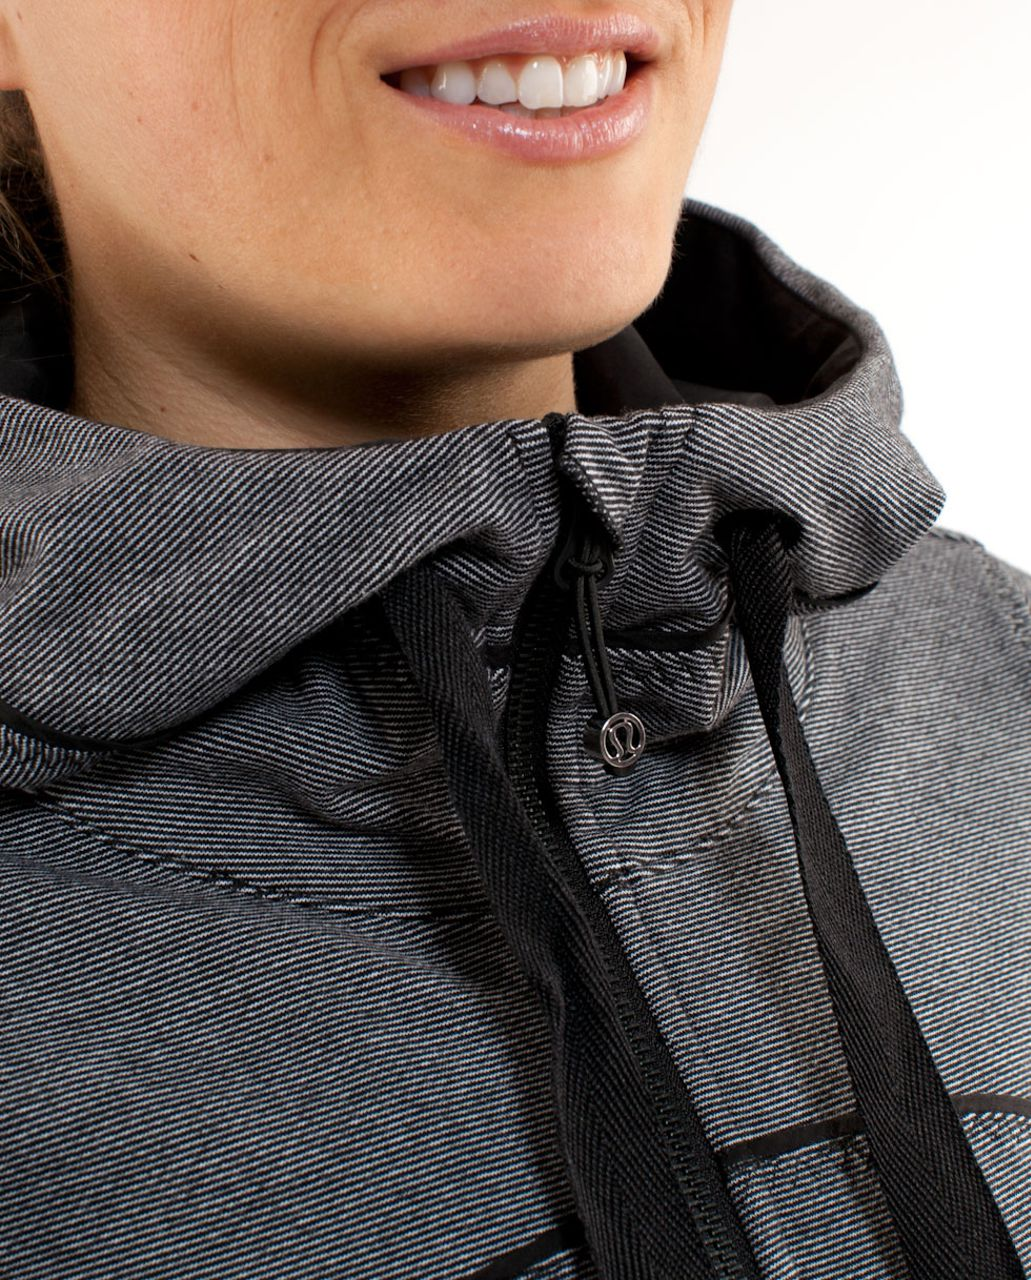 Lululemon Live Simply Jacket - White Black Mircostripe